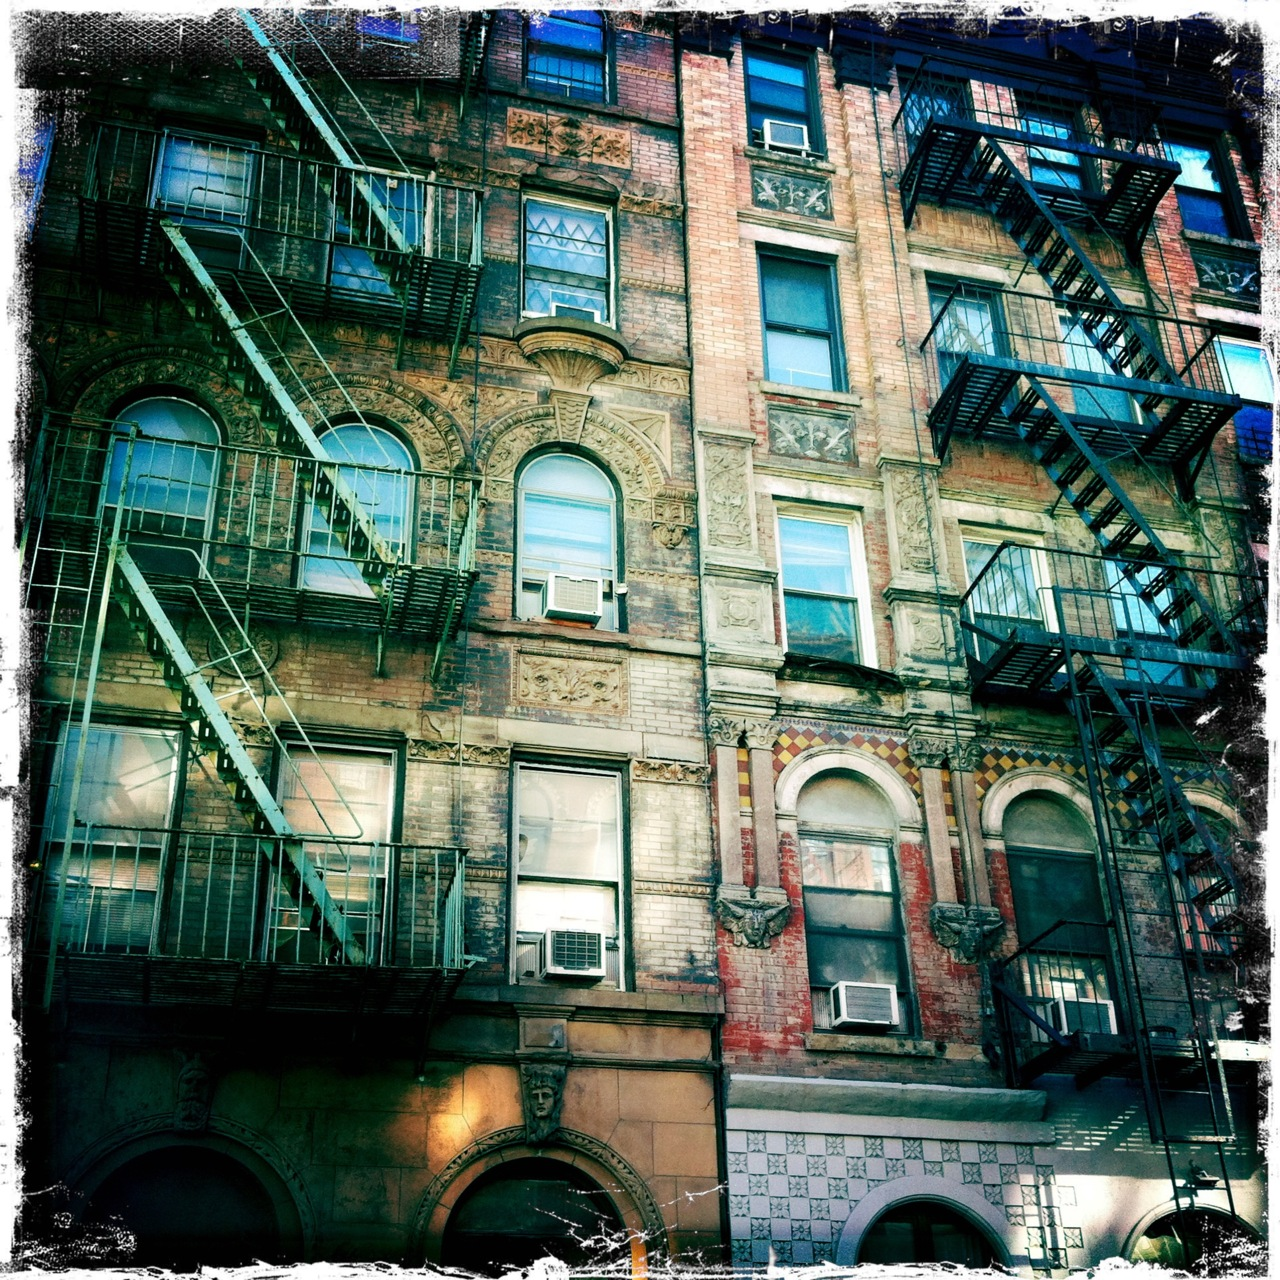 Tenement. Lower East Side. NYC.